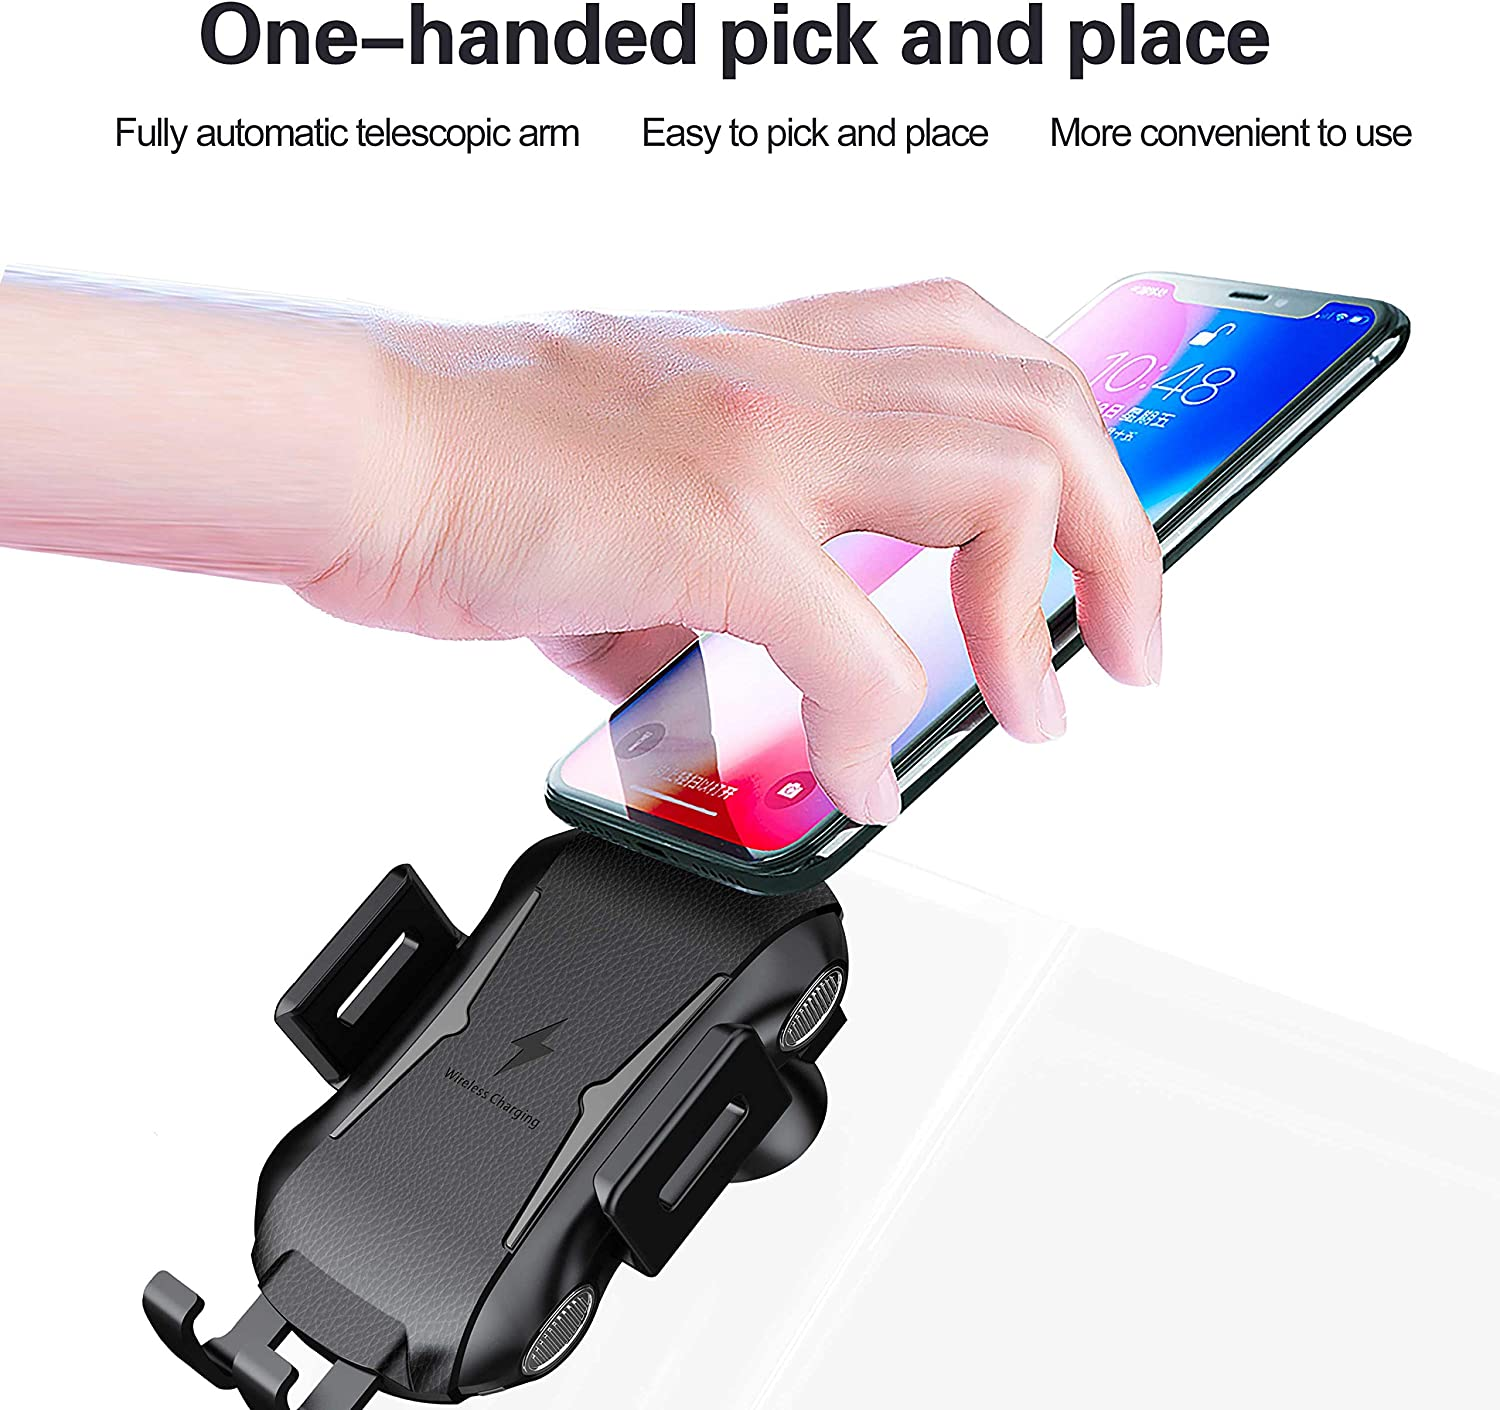 Wireless Car Charger, Air Vent Wireless Charger Holder with Fast Charging, Compatible with iPhone XS MAX XR X 8 8Plus Samsung S9 S8 Note and More, Anti-Slip Rubber and Soft Plastic Material Black